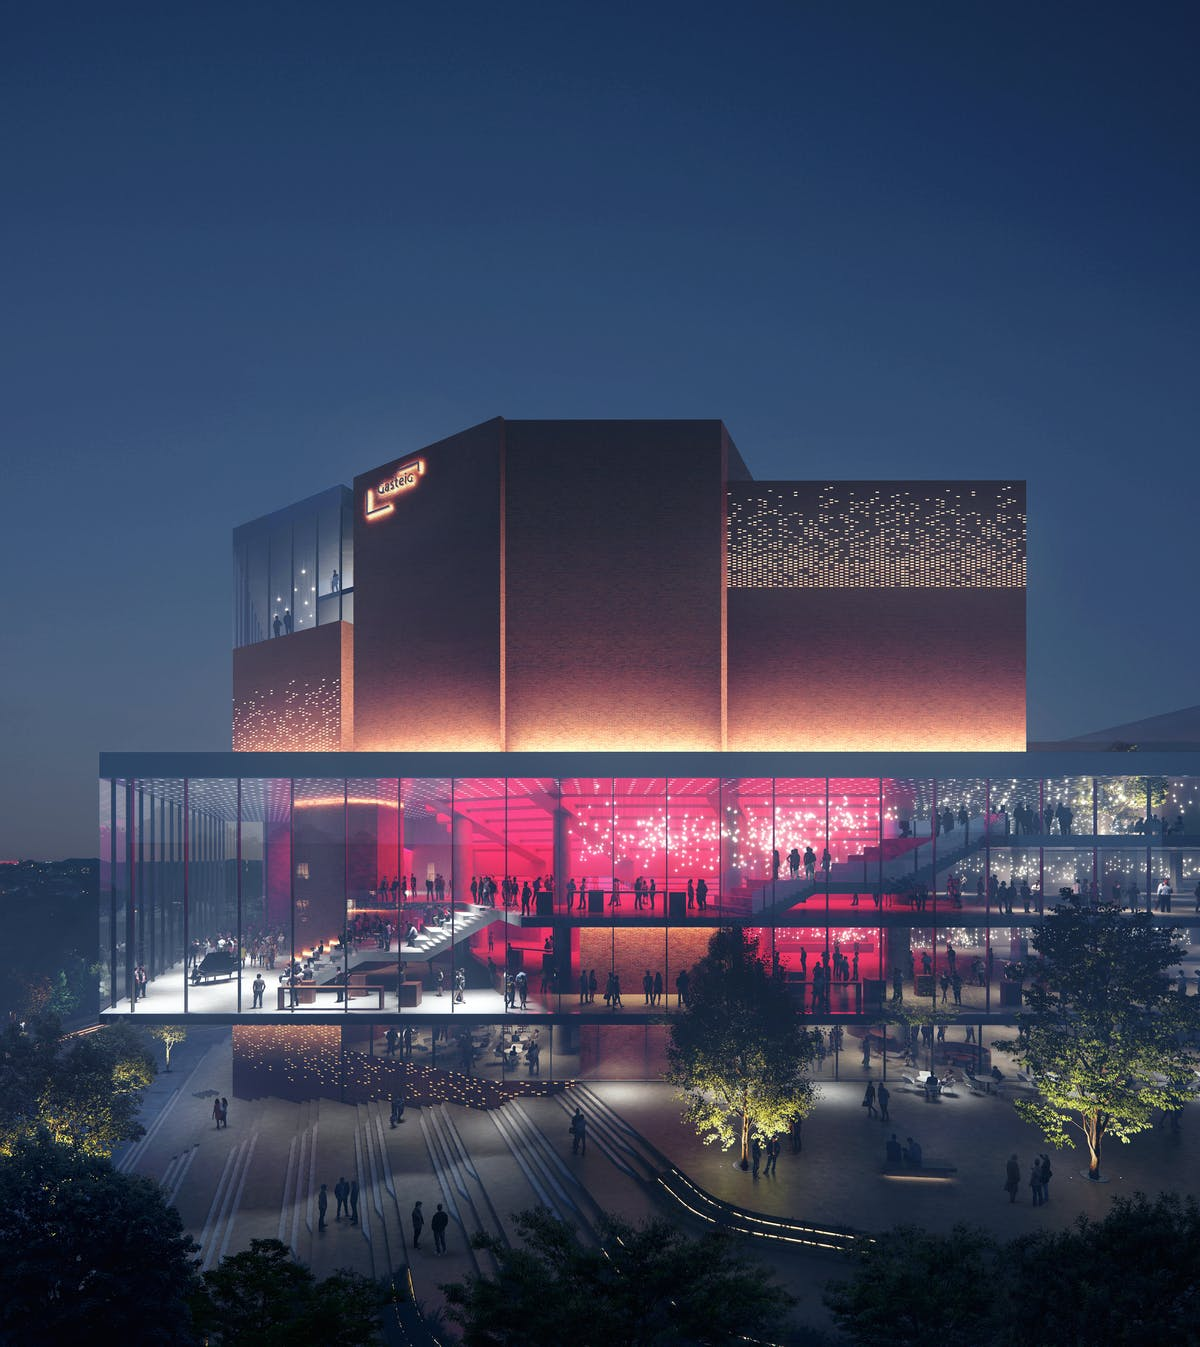 HENN's winning design gives the largest cultural center in Europe a makeover